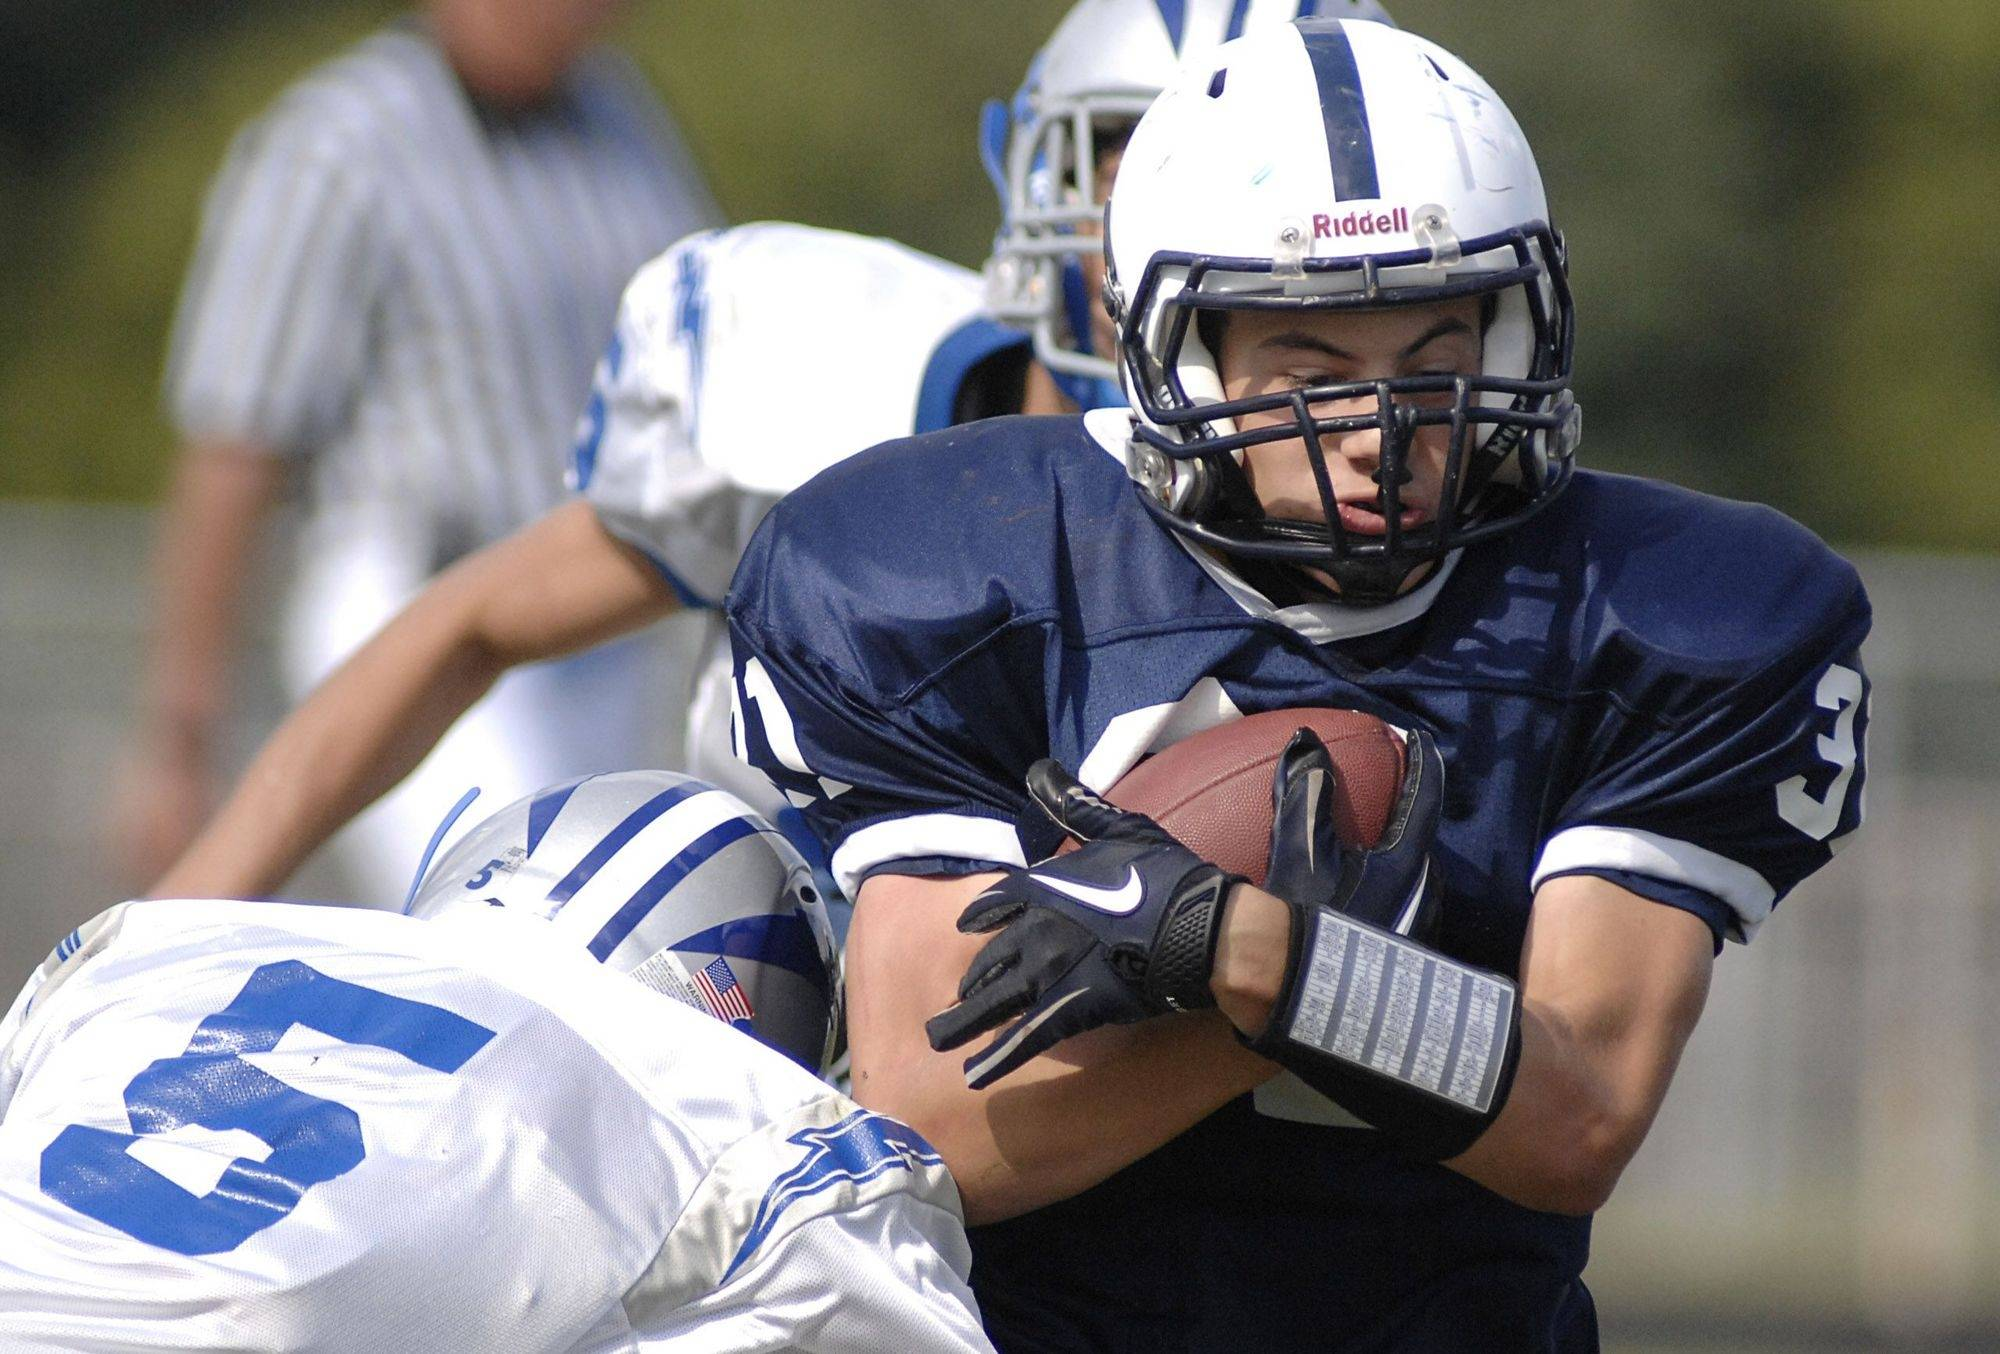 Cary-Grove's Ryan Mahoney is tackled by Woodstock's Jake Graff Ponstein in the first half on Saturday, September 11.